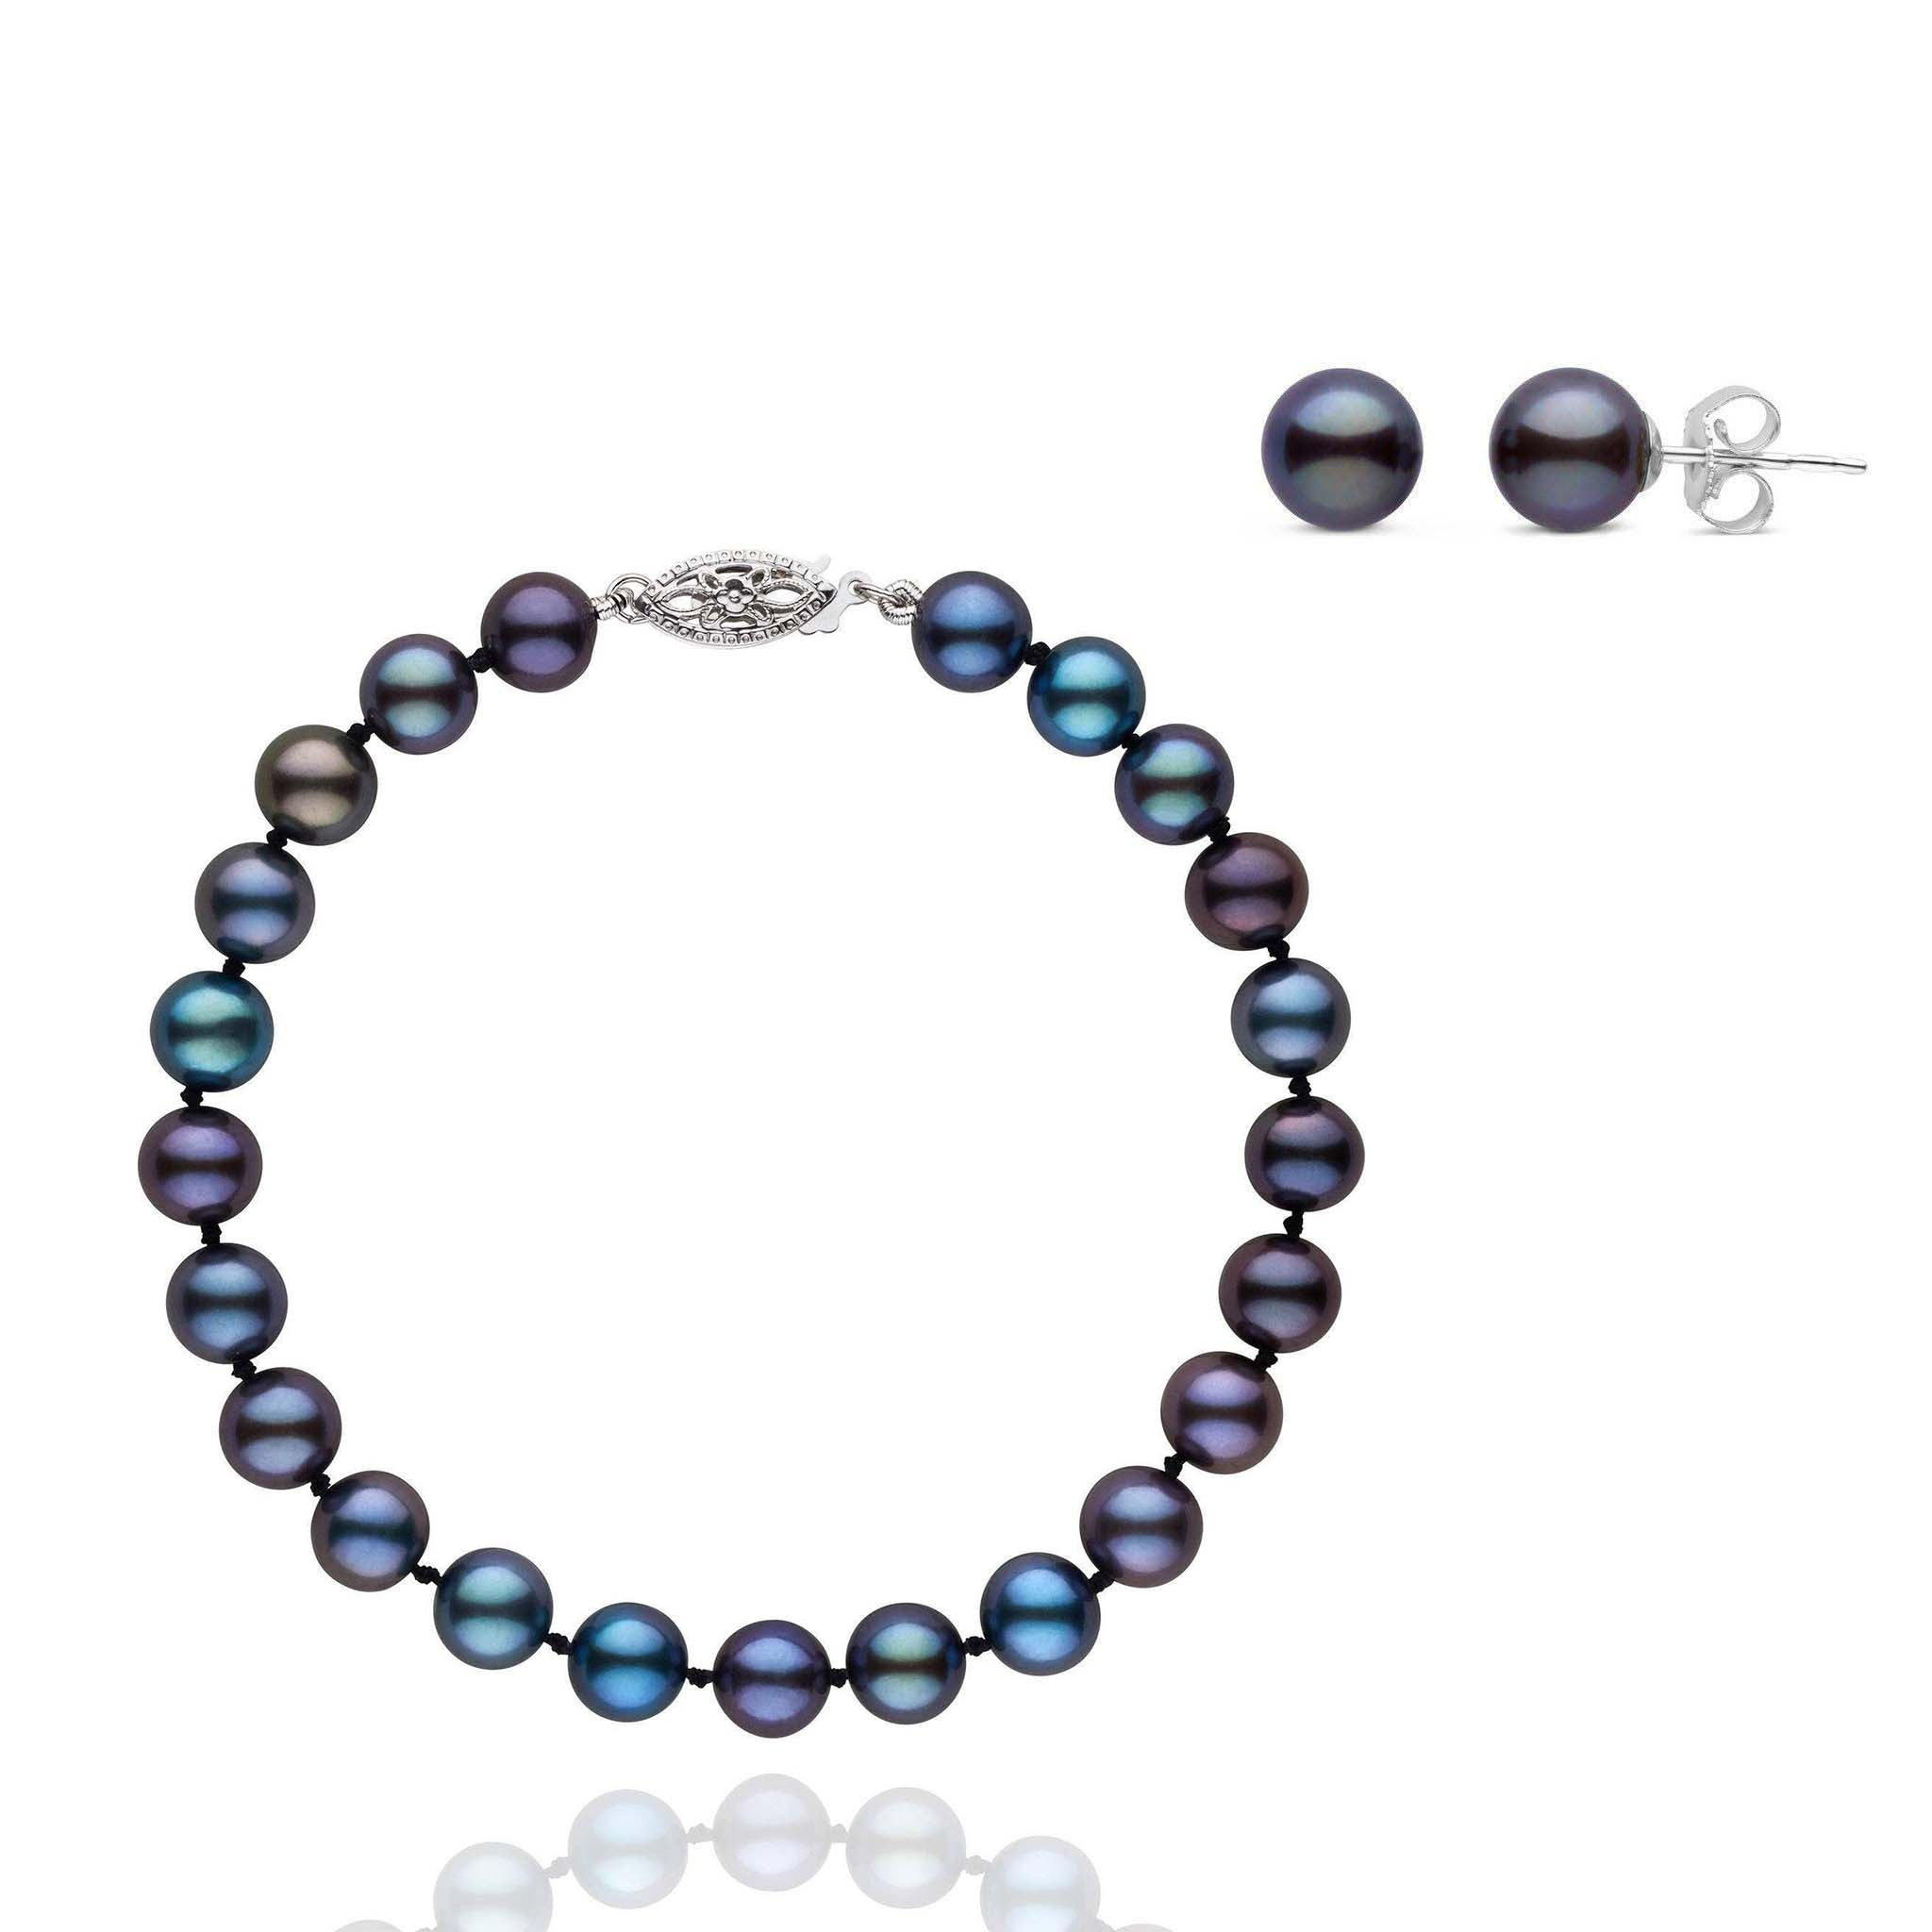 6.5-7.0 mm AAA Black Freshwater Pearls 2 Piece Bracelet and Stud Earring Set